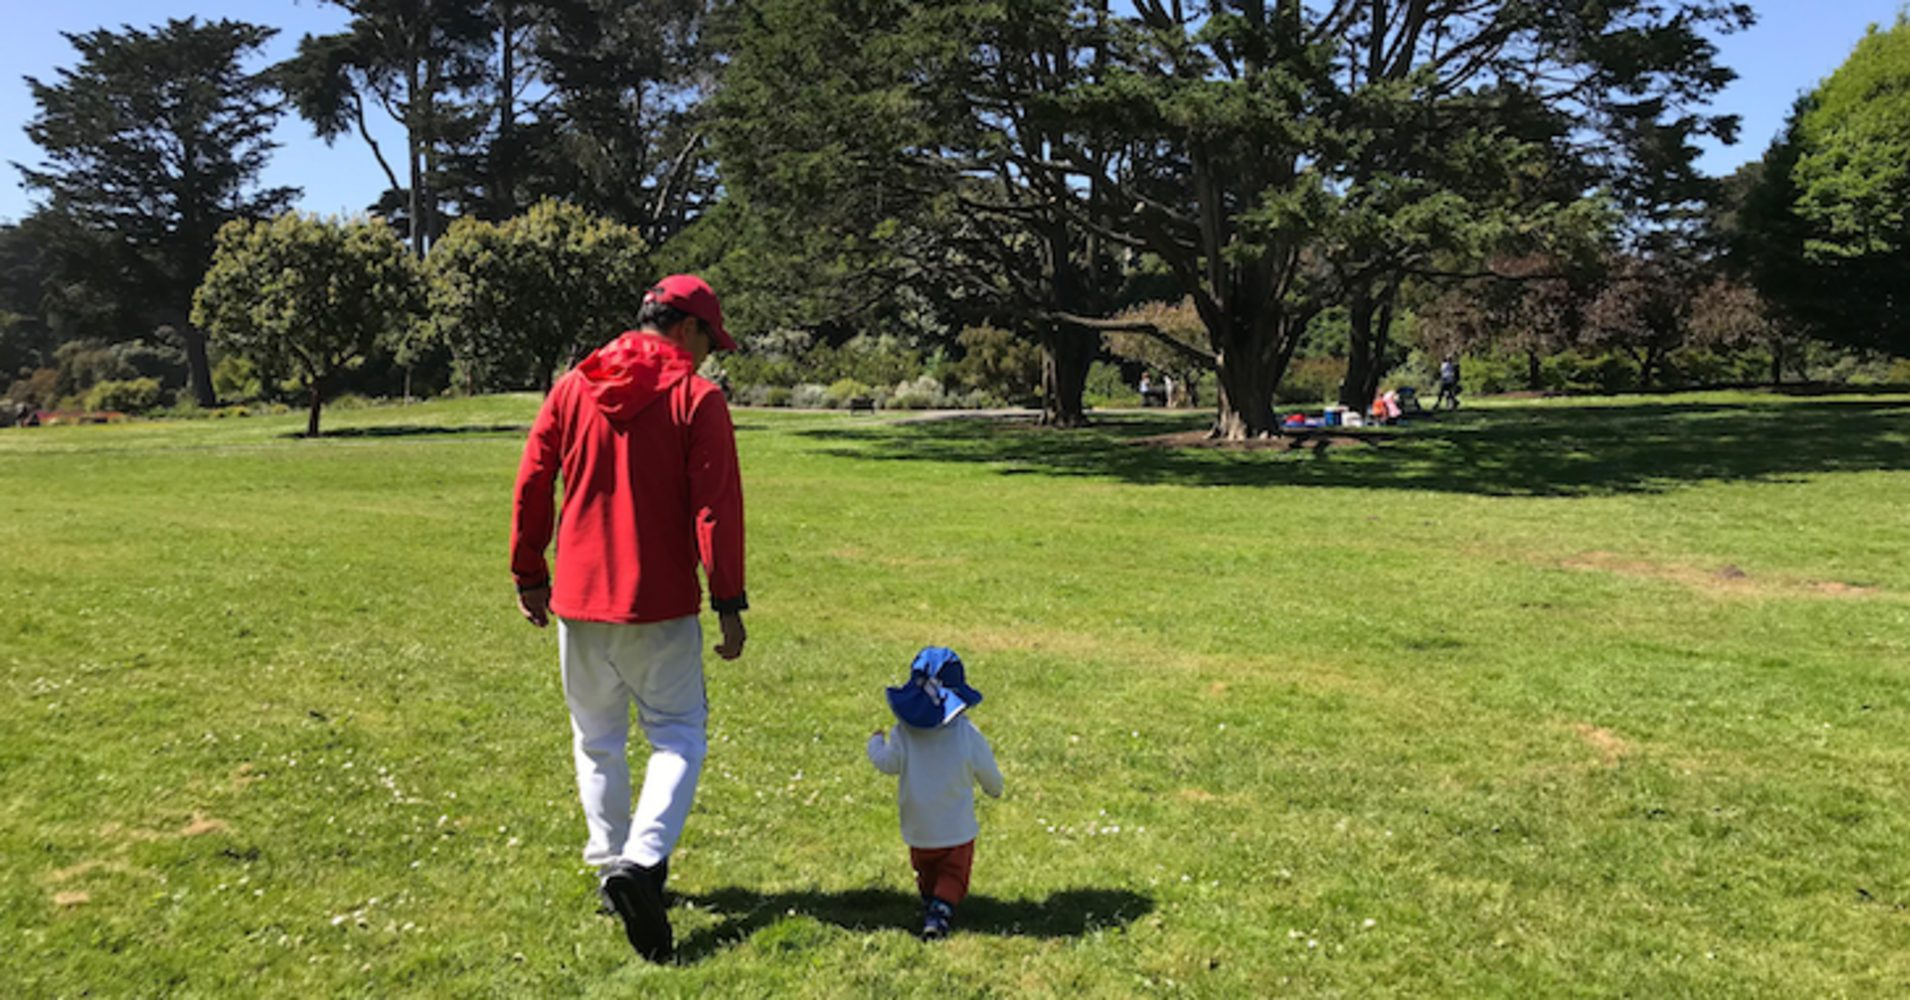 How One Jobless Family Of Three Thrives In Expensive San Francisco